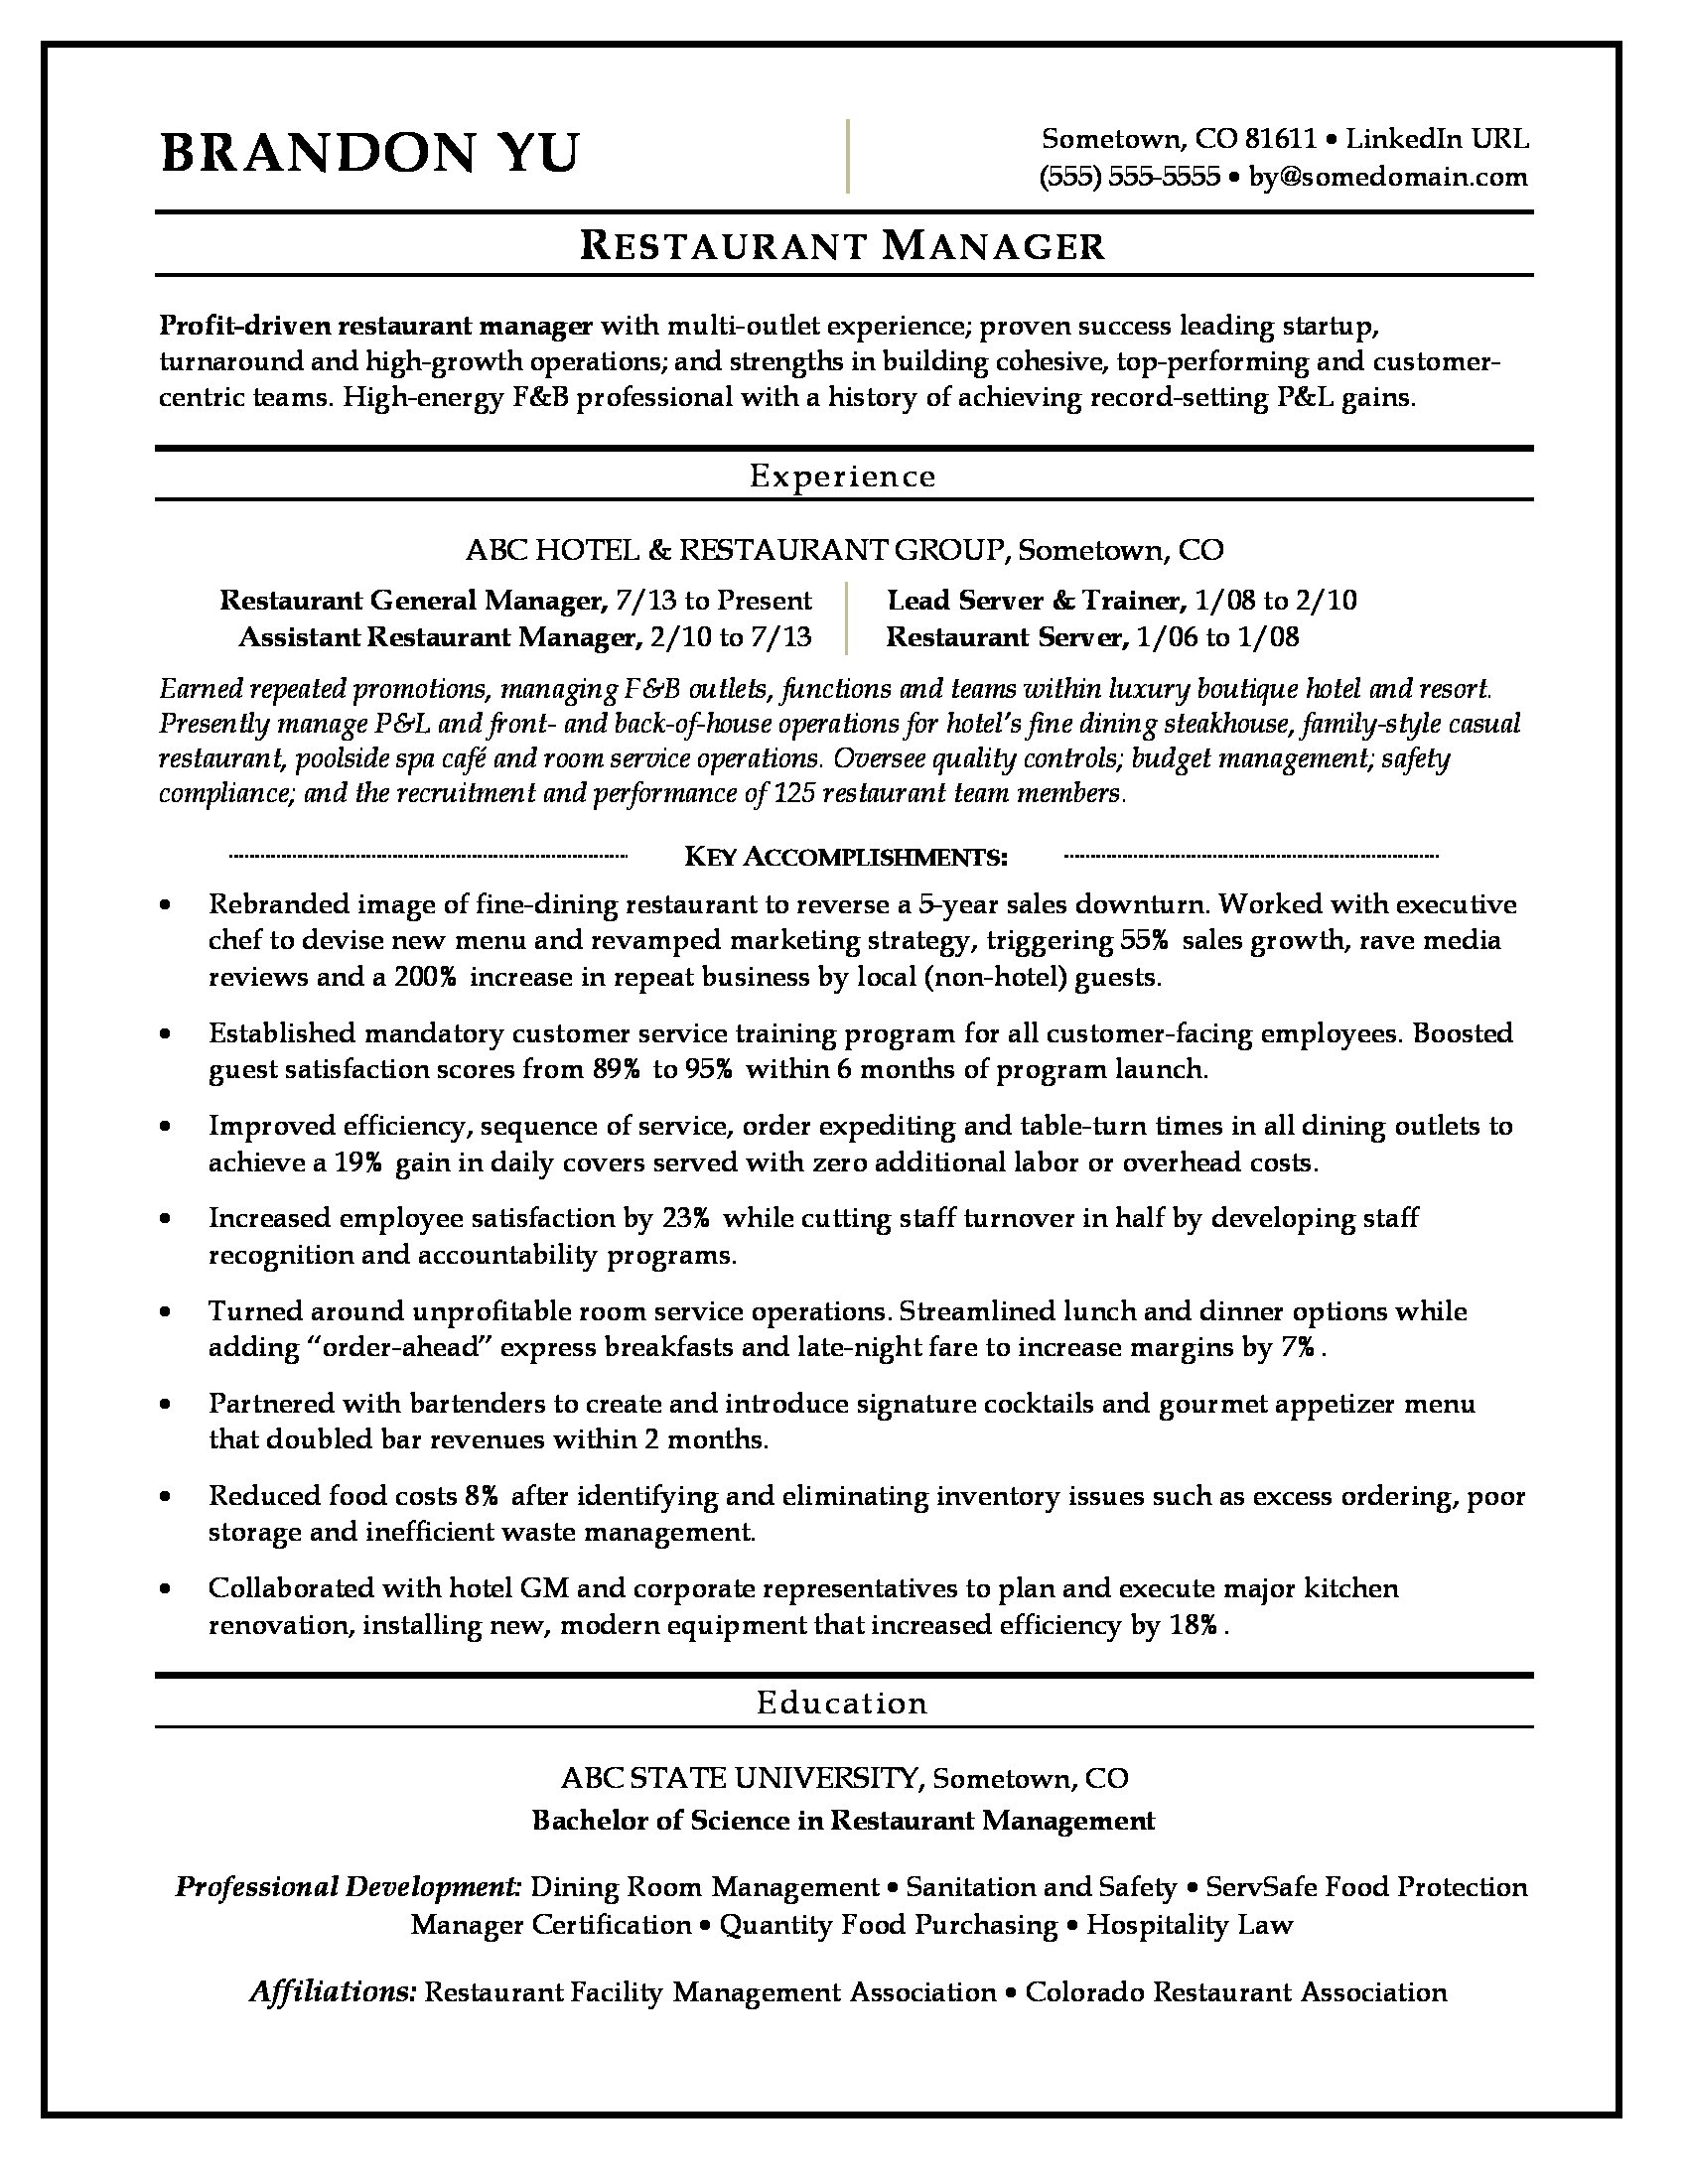 Restaurant Manager Resume Sample Monstercom